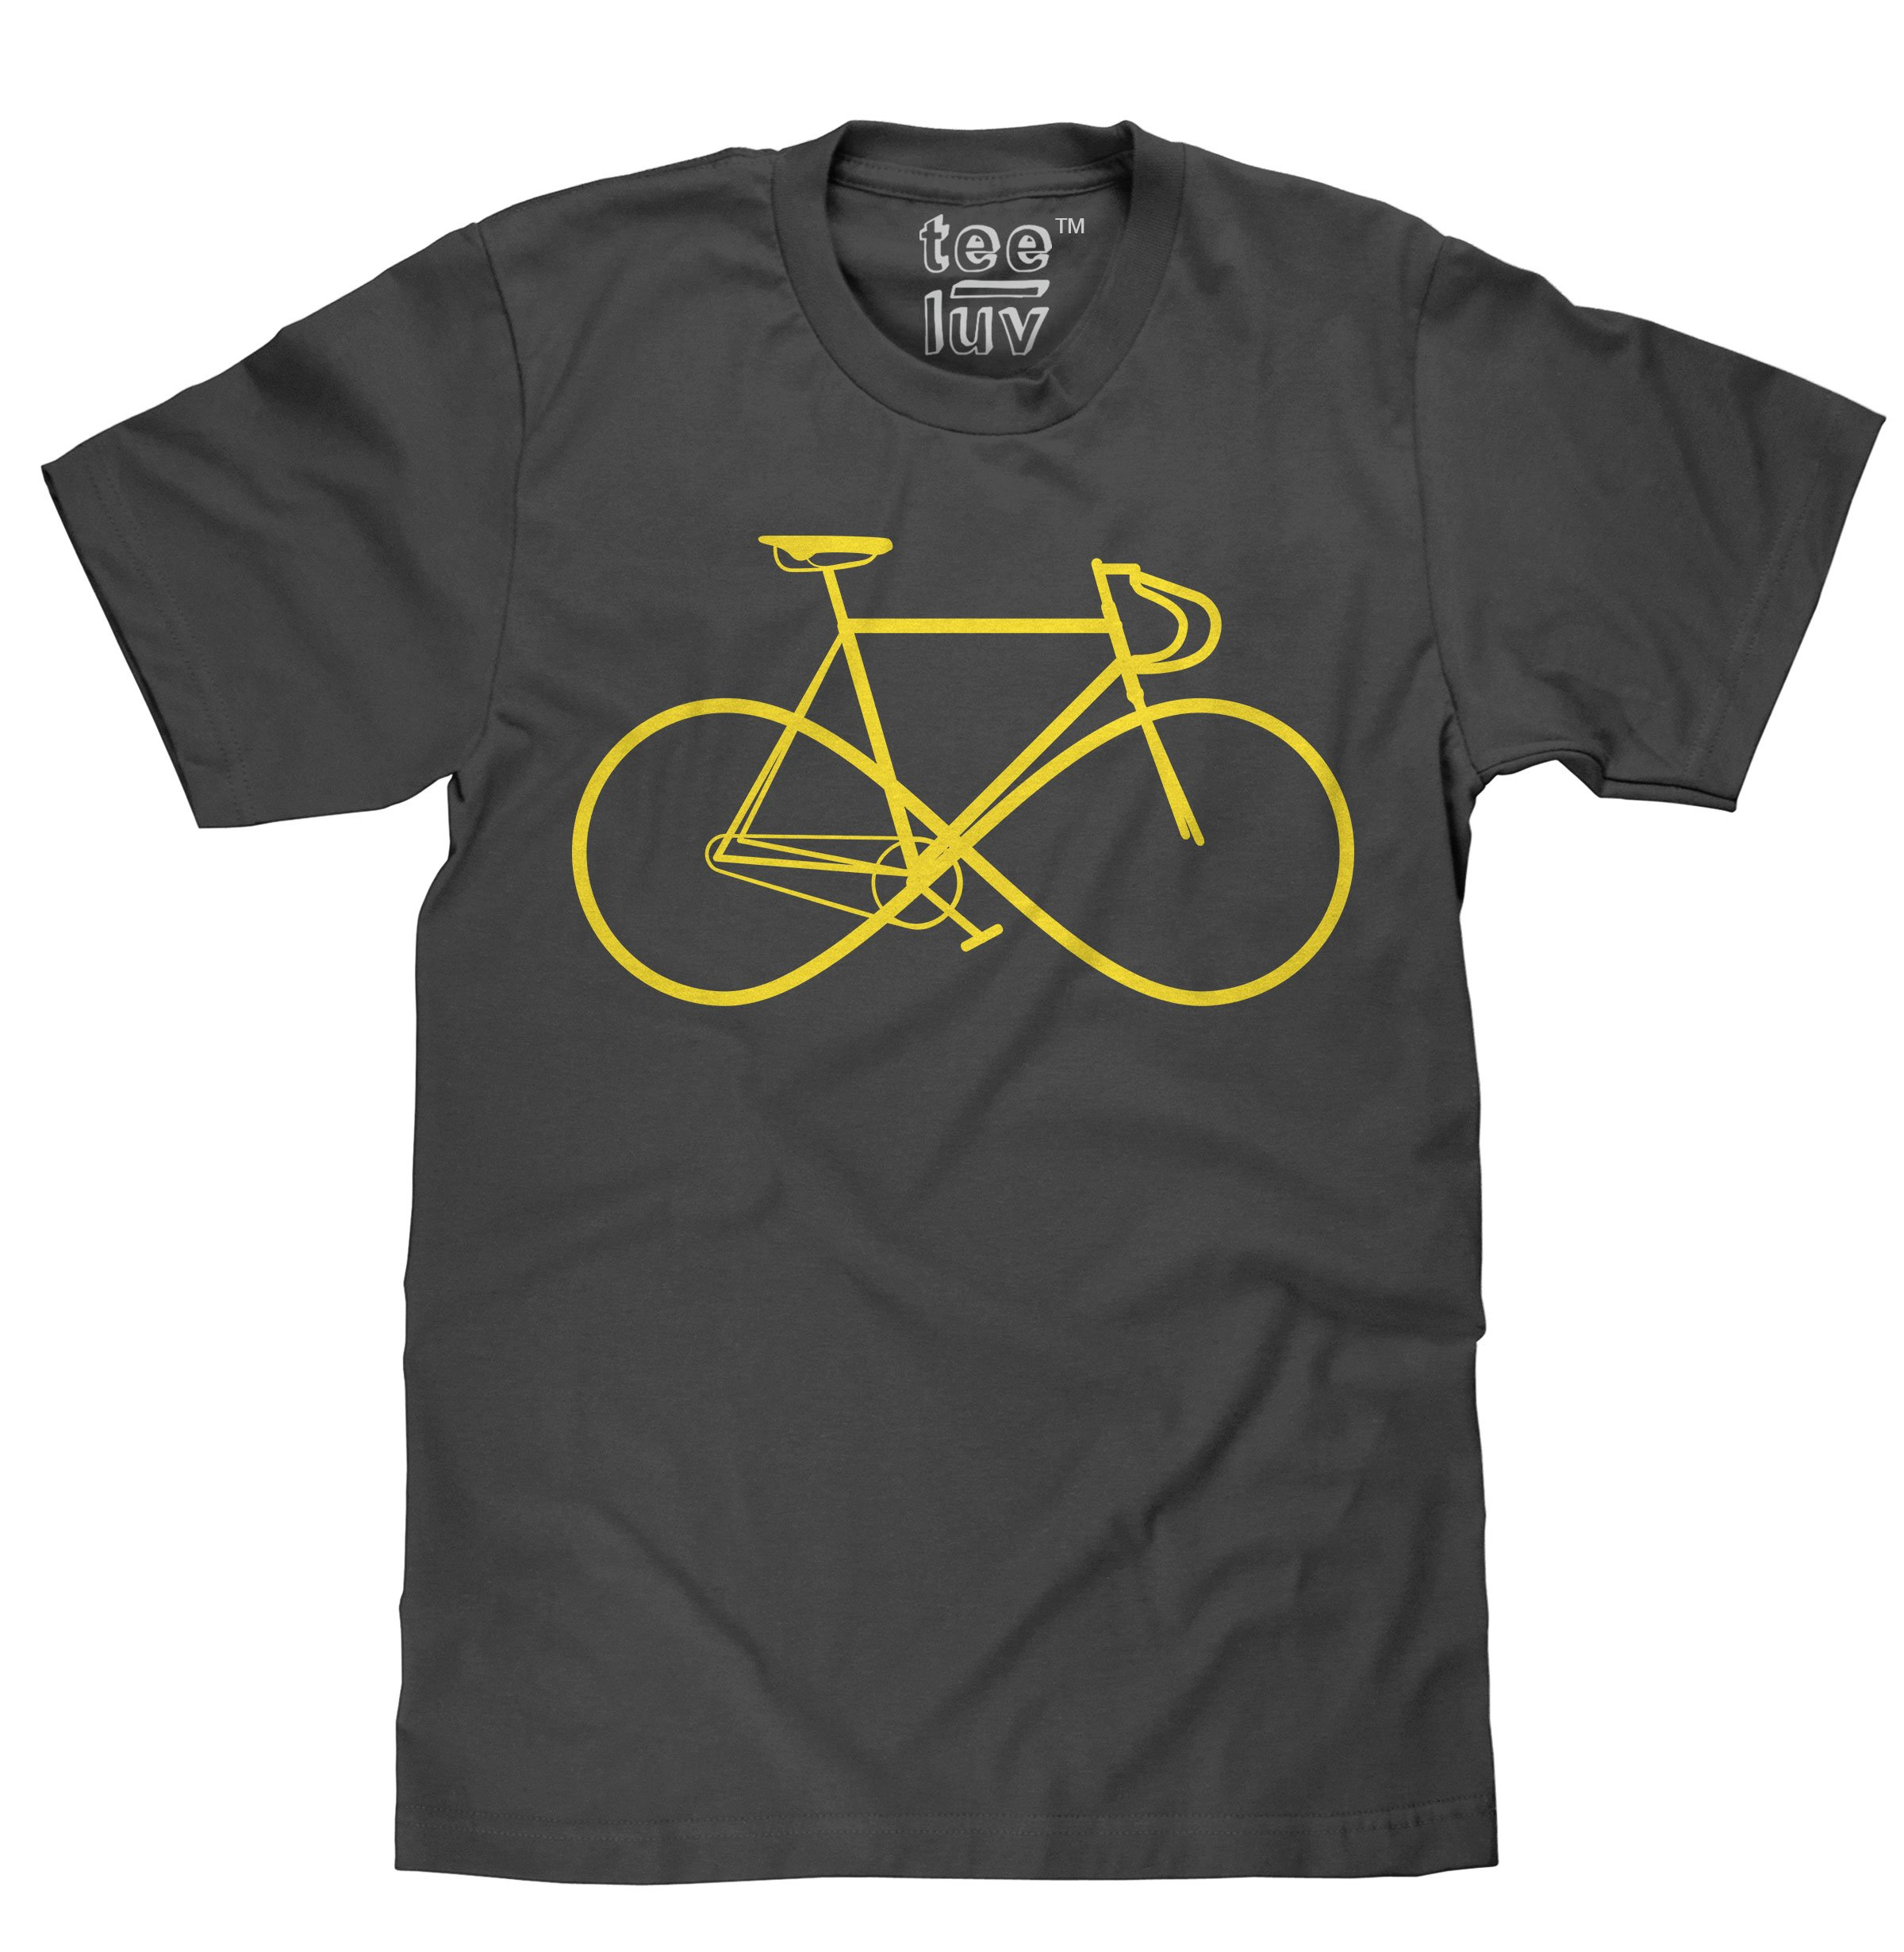 Infinity Sign Bike T-Shirt |Classic Look|100% Cotton-X-Large